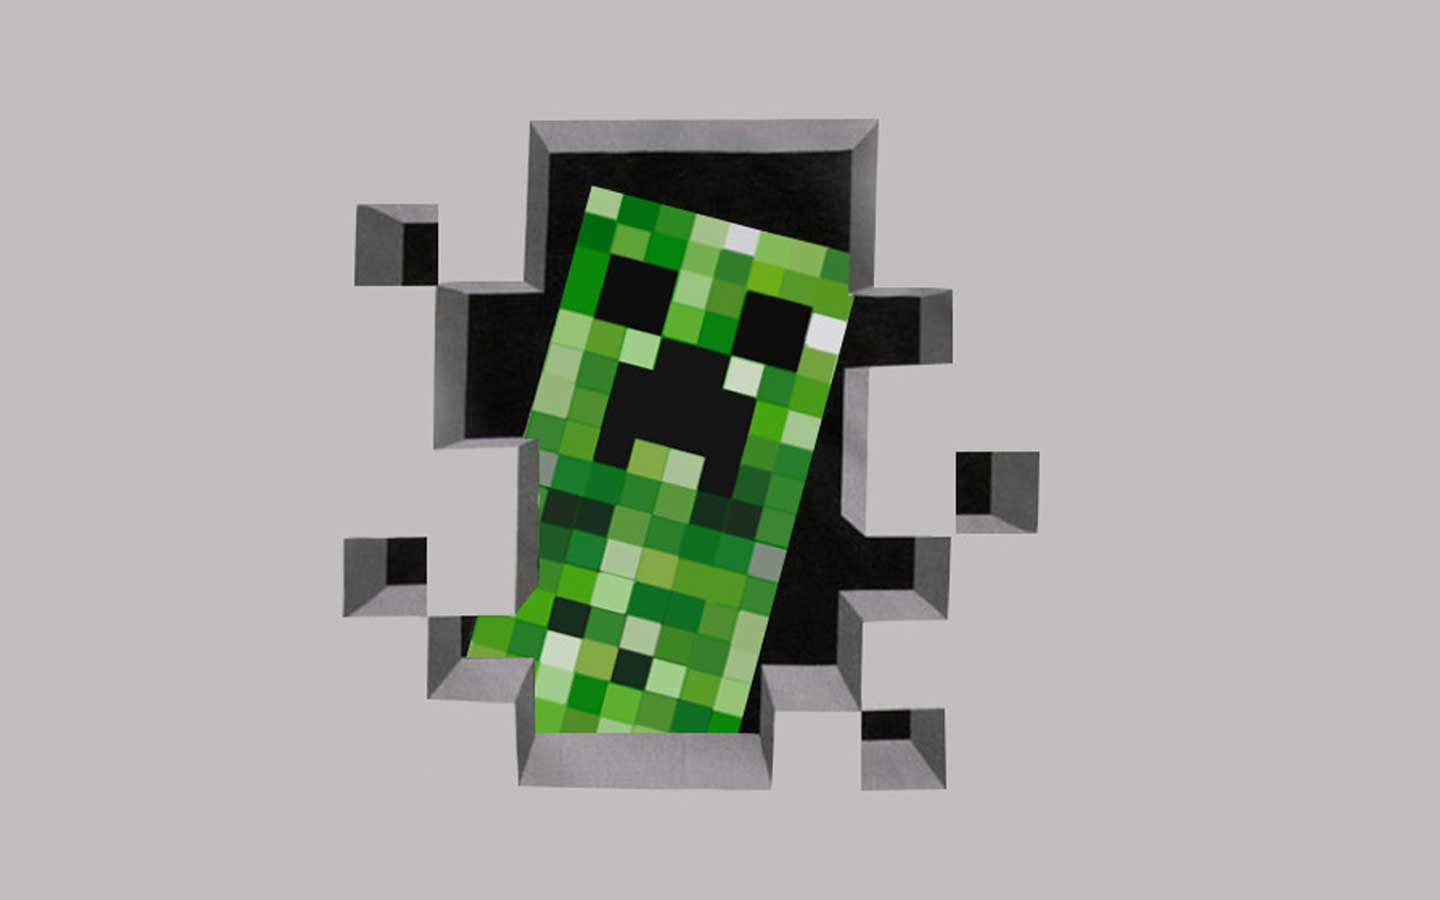 Wallpapers For > Minecraft Creeper Wallpaper Hd 1080p